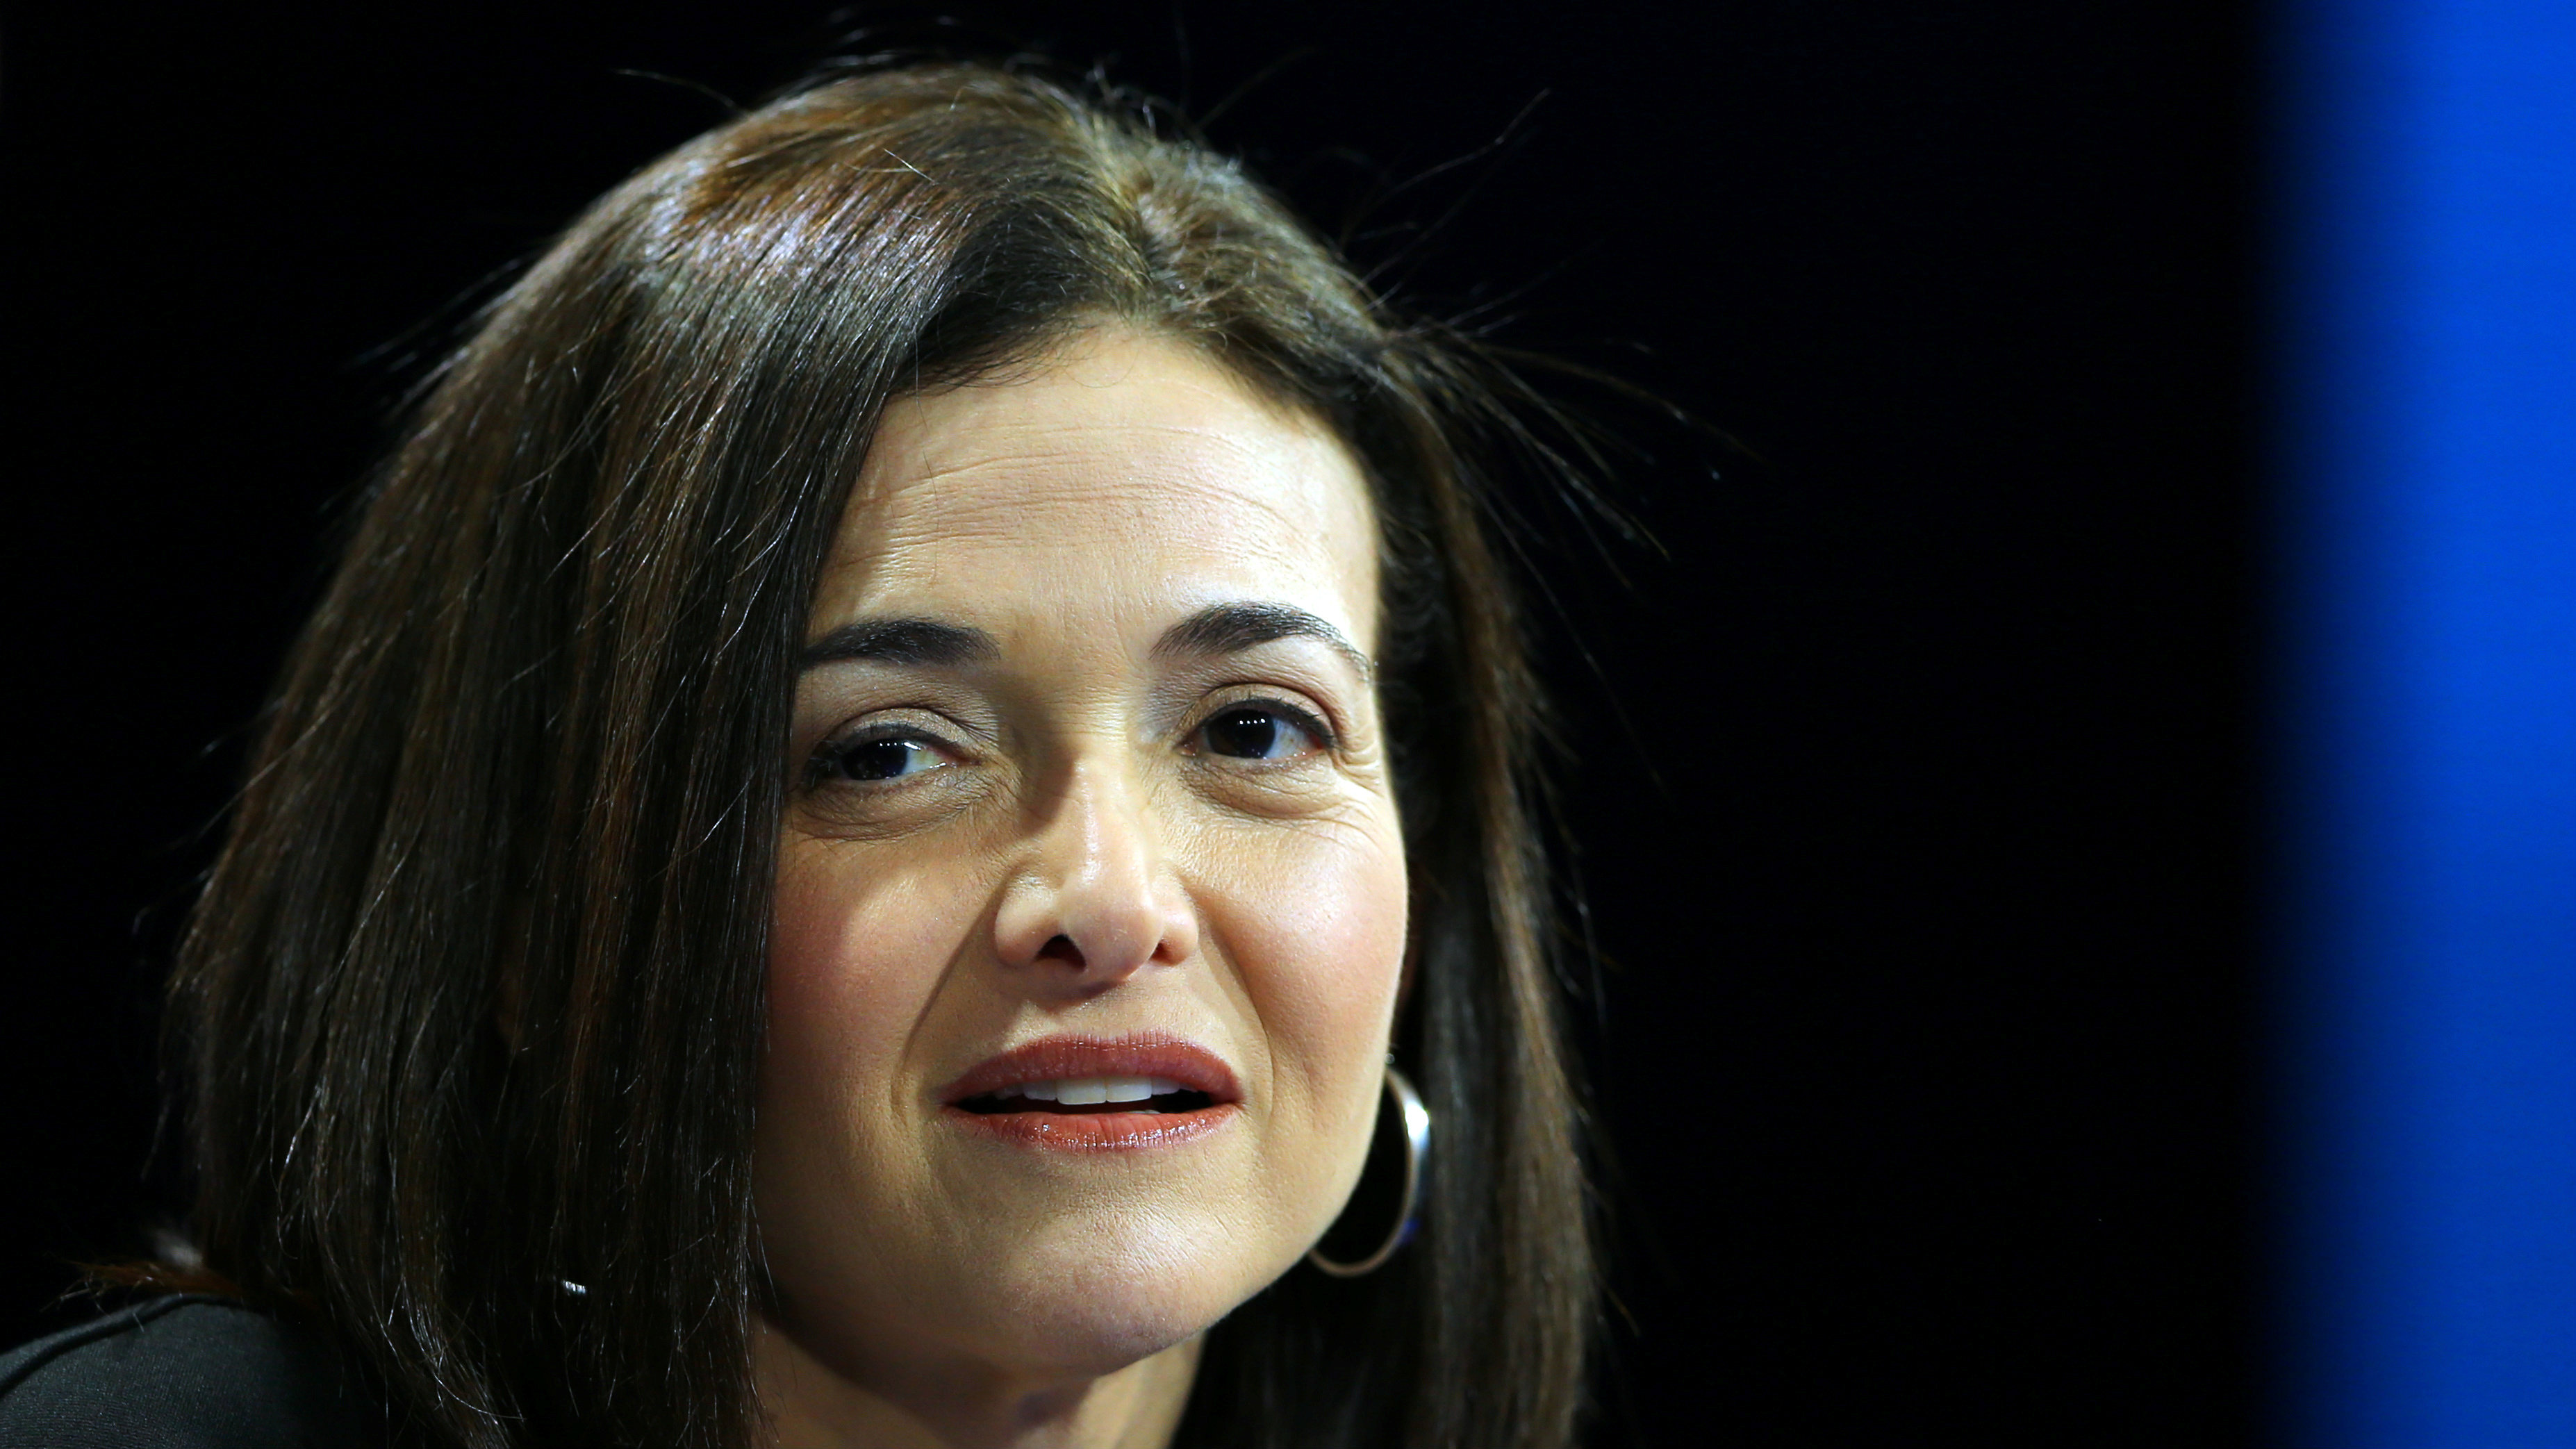 Sheryl Sandberg, Chief Operating Officer of Facebook speaks at the WSJD Live conference in Laguna